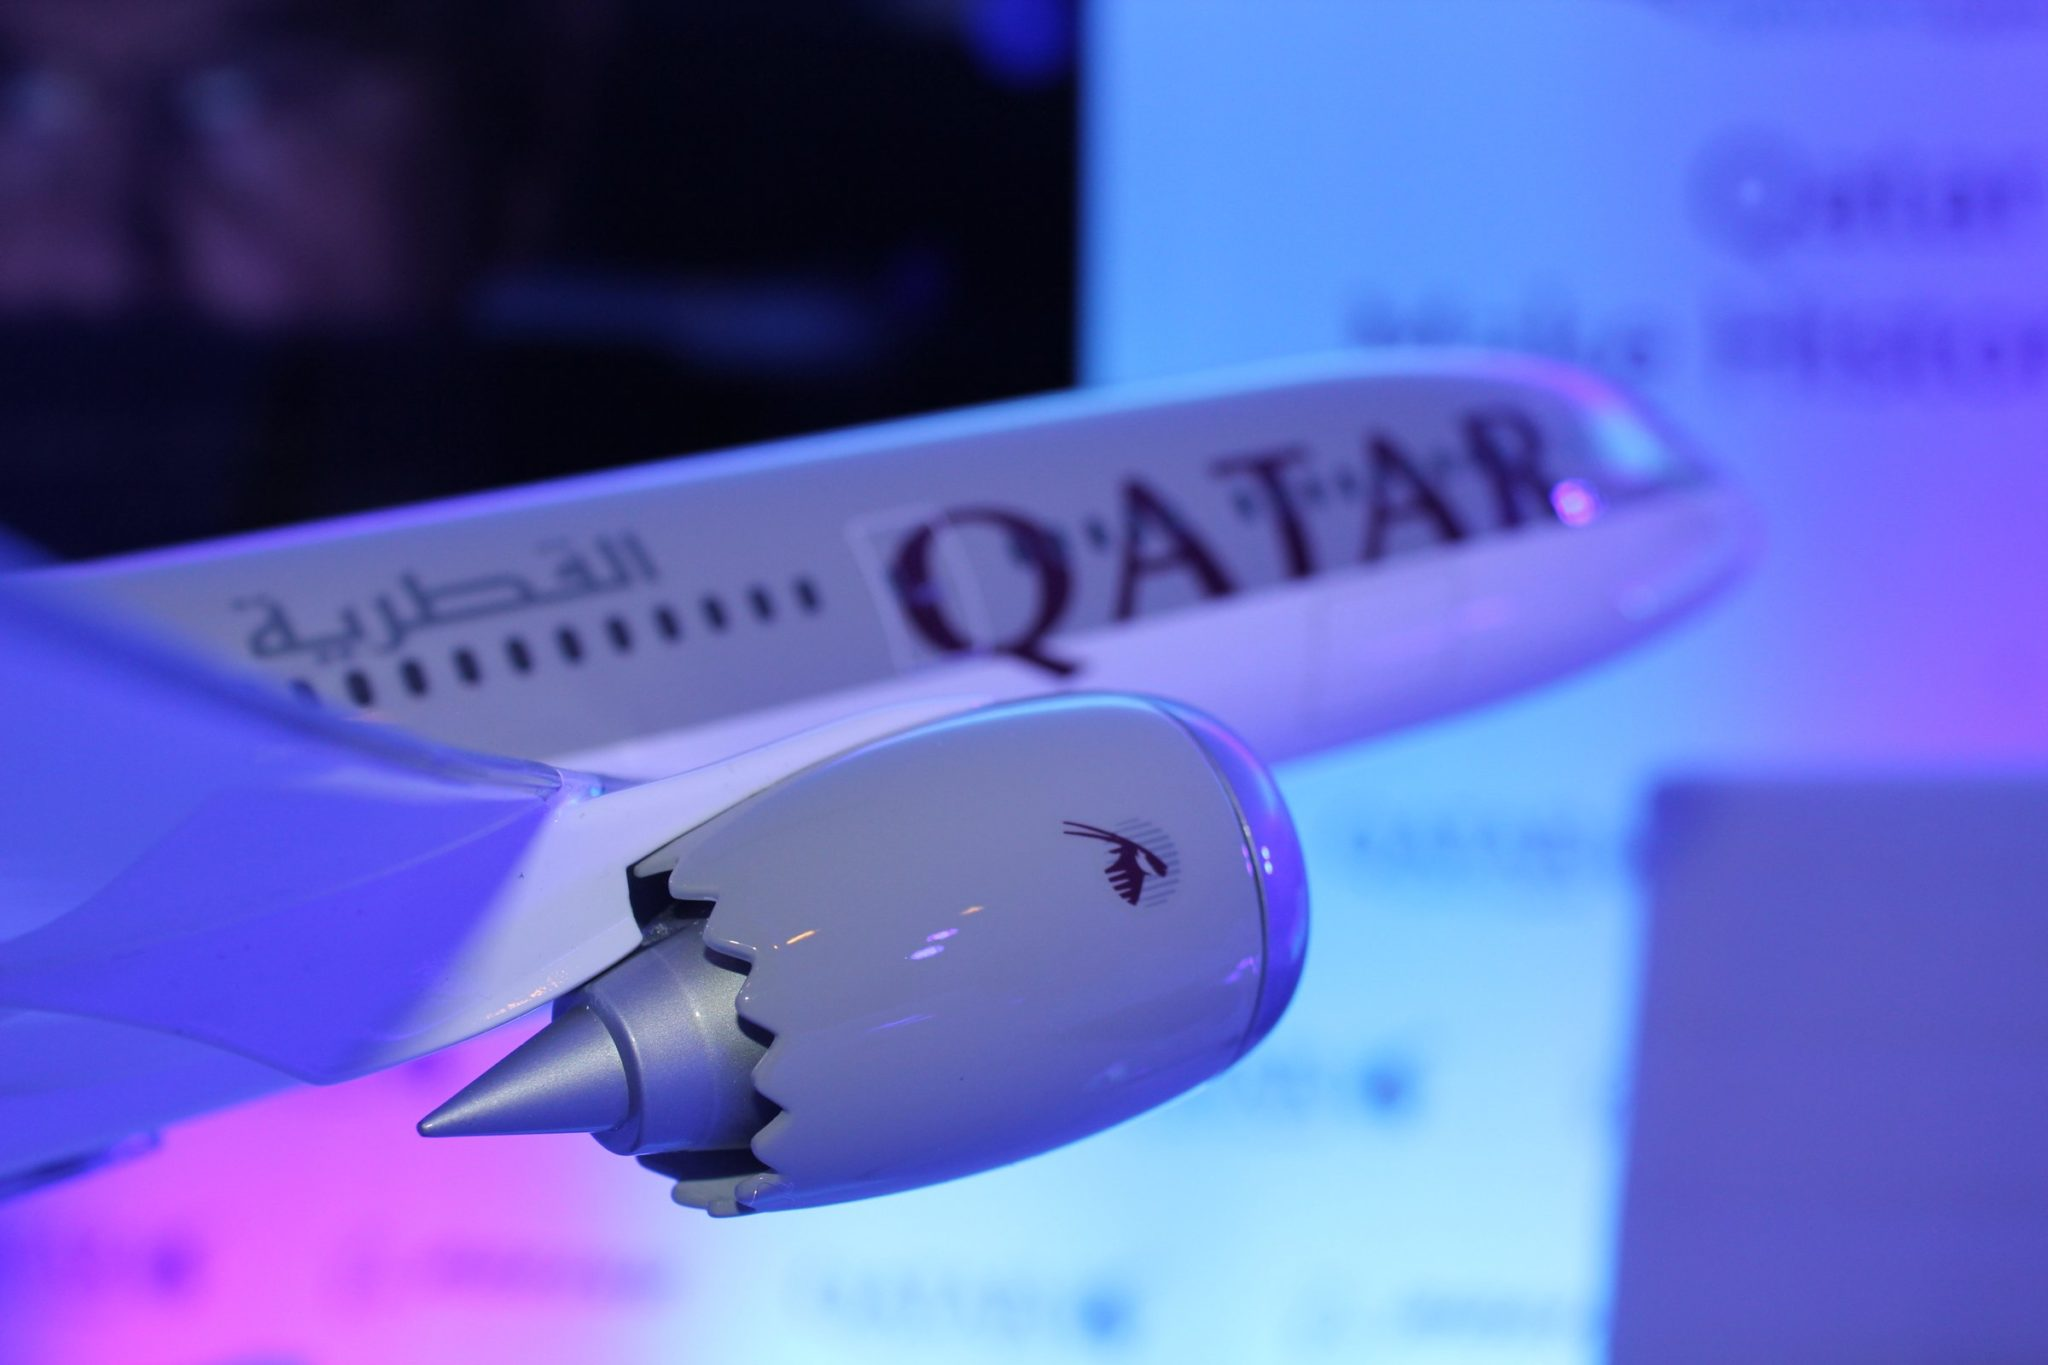 Qatar Airways to buy 100 Boeing planes for up to $18.6 bn